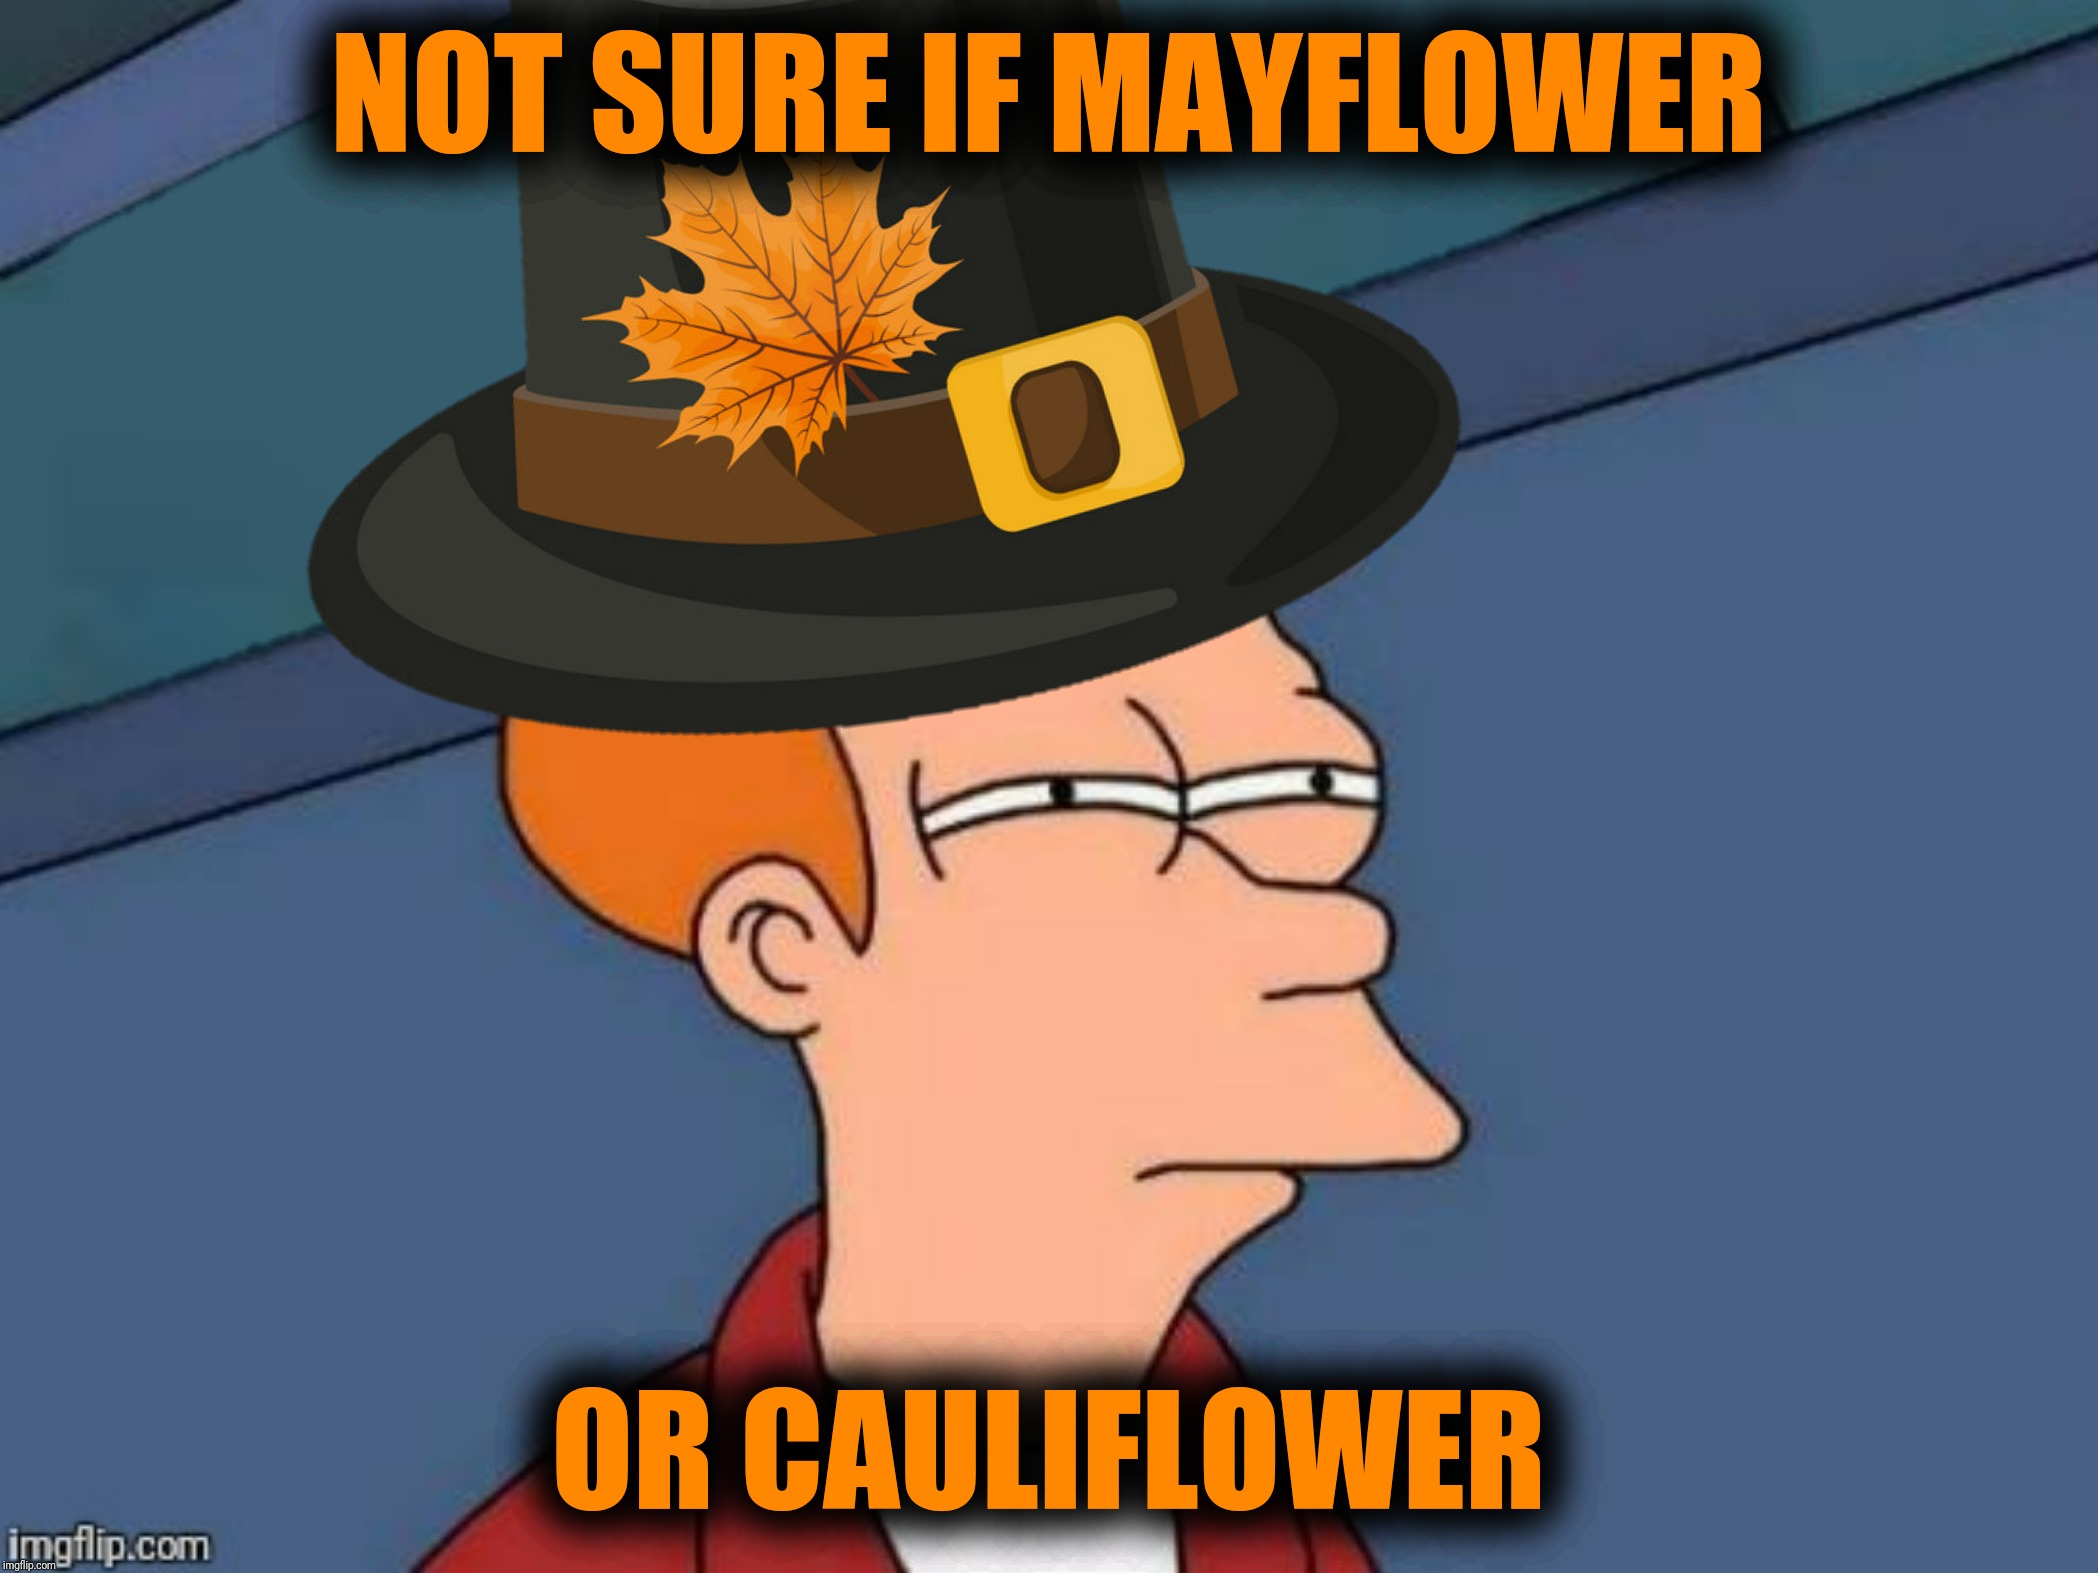 Bad Photoshop Sunday presents:  Somehow Mayflower just isn't colonial enough | NOT SURE IF MAYFLOWER OR CAULIFLOWER | image tagged in bad photoshop sunday,futurama fry,colonialism,pilgrims,mayflower,cauliflower | made w/ Imgflip meme maker